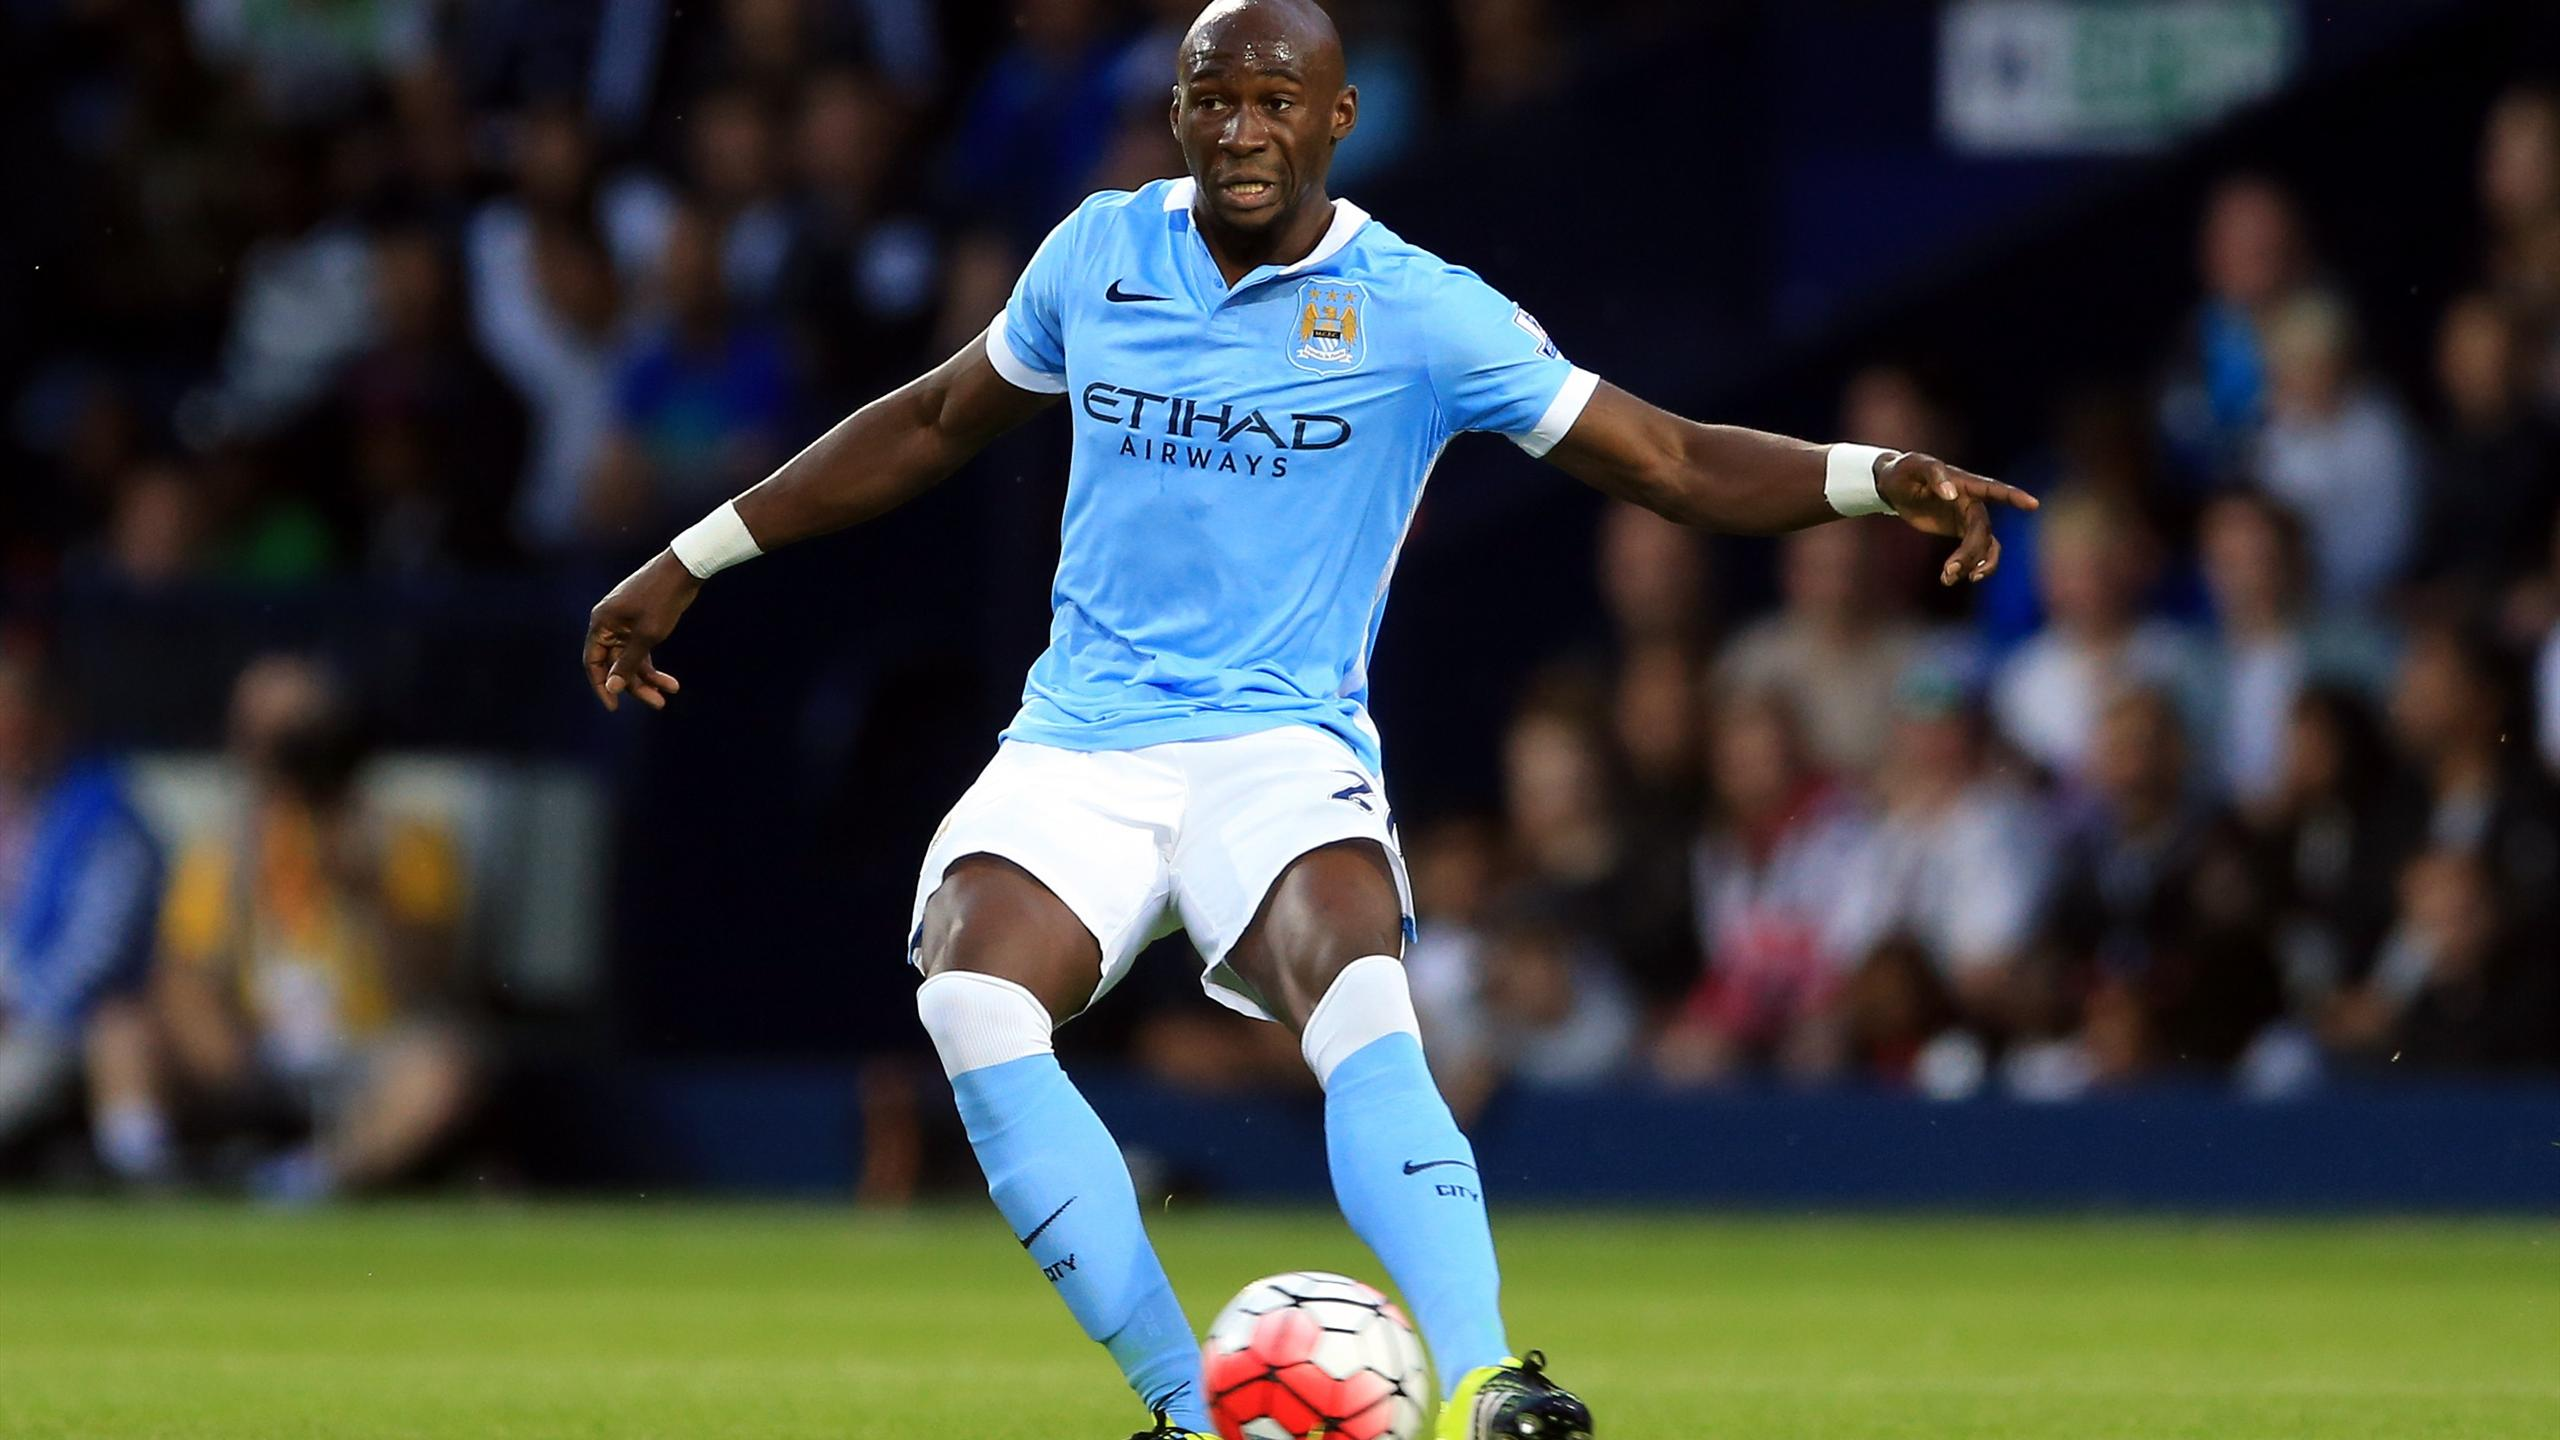 Eliaquim Mangala to be given chance to prove his worth at